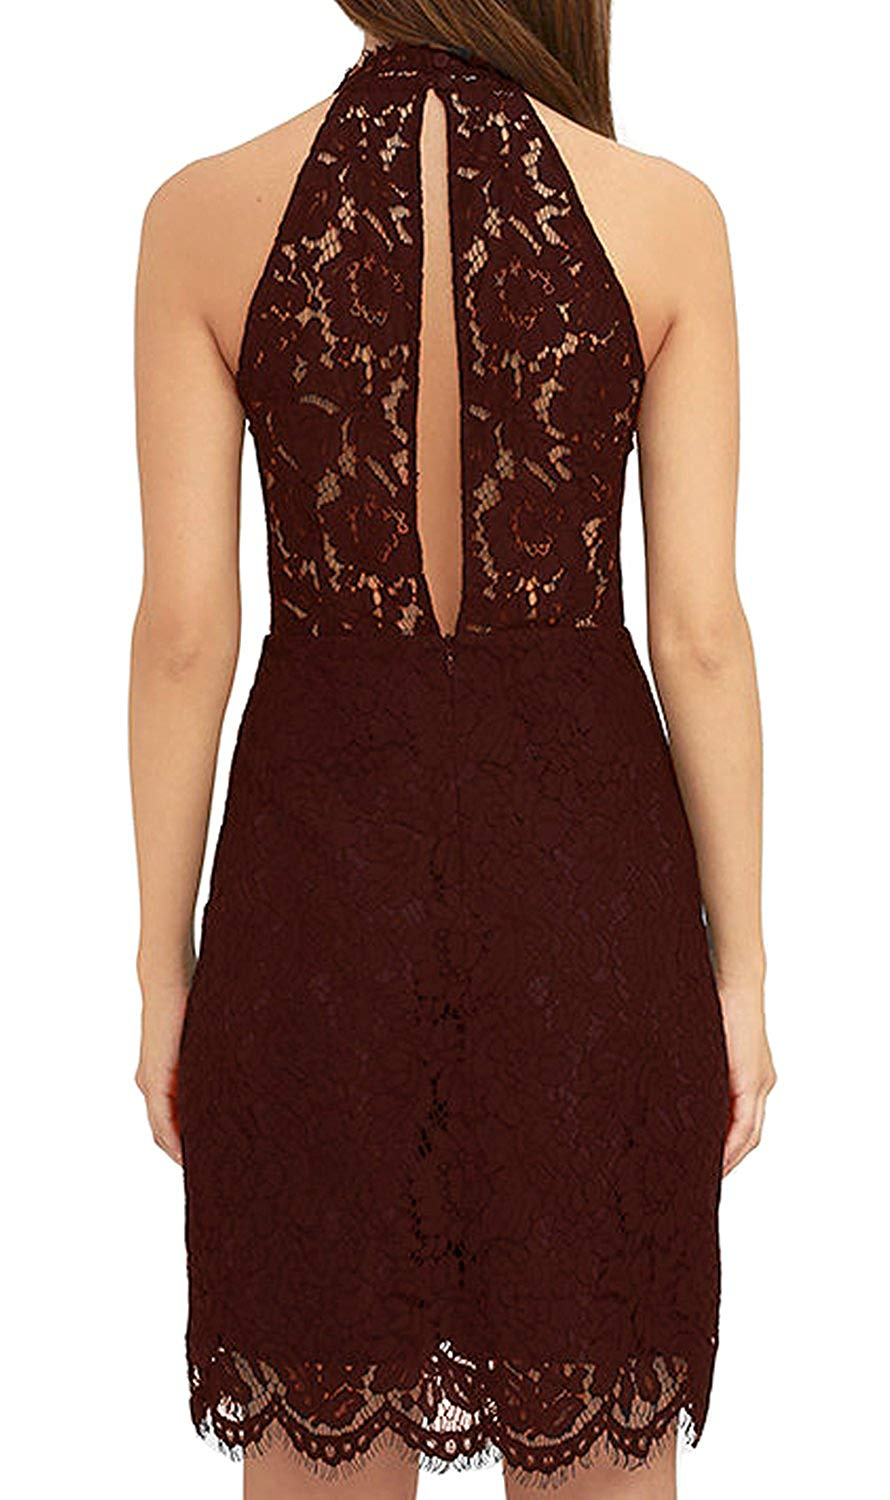 adb175963 ... Load image into Gallery viewer, Zalalus Women's Cocktail Dress High  Neck ...